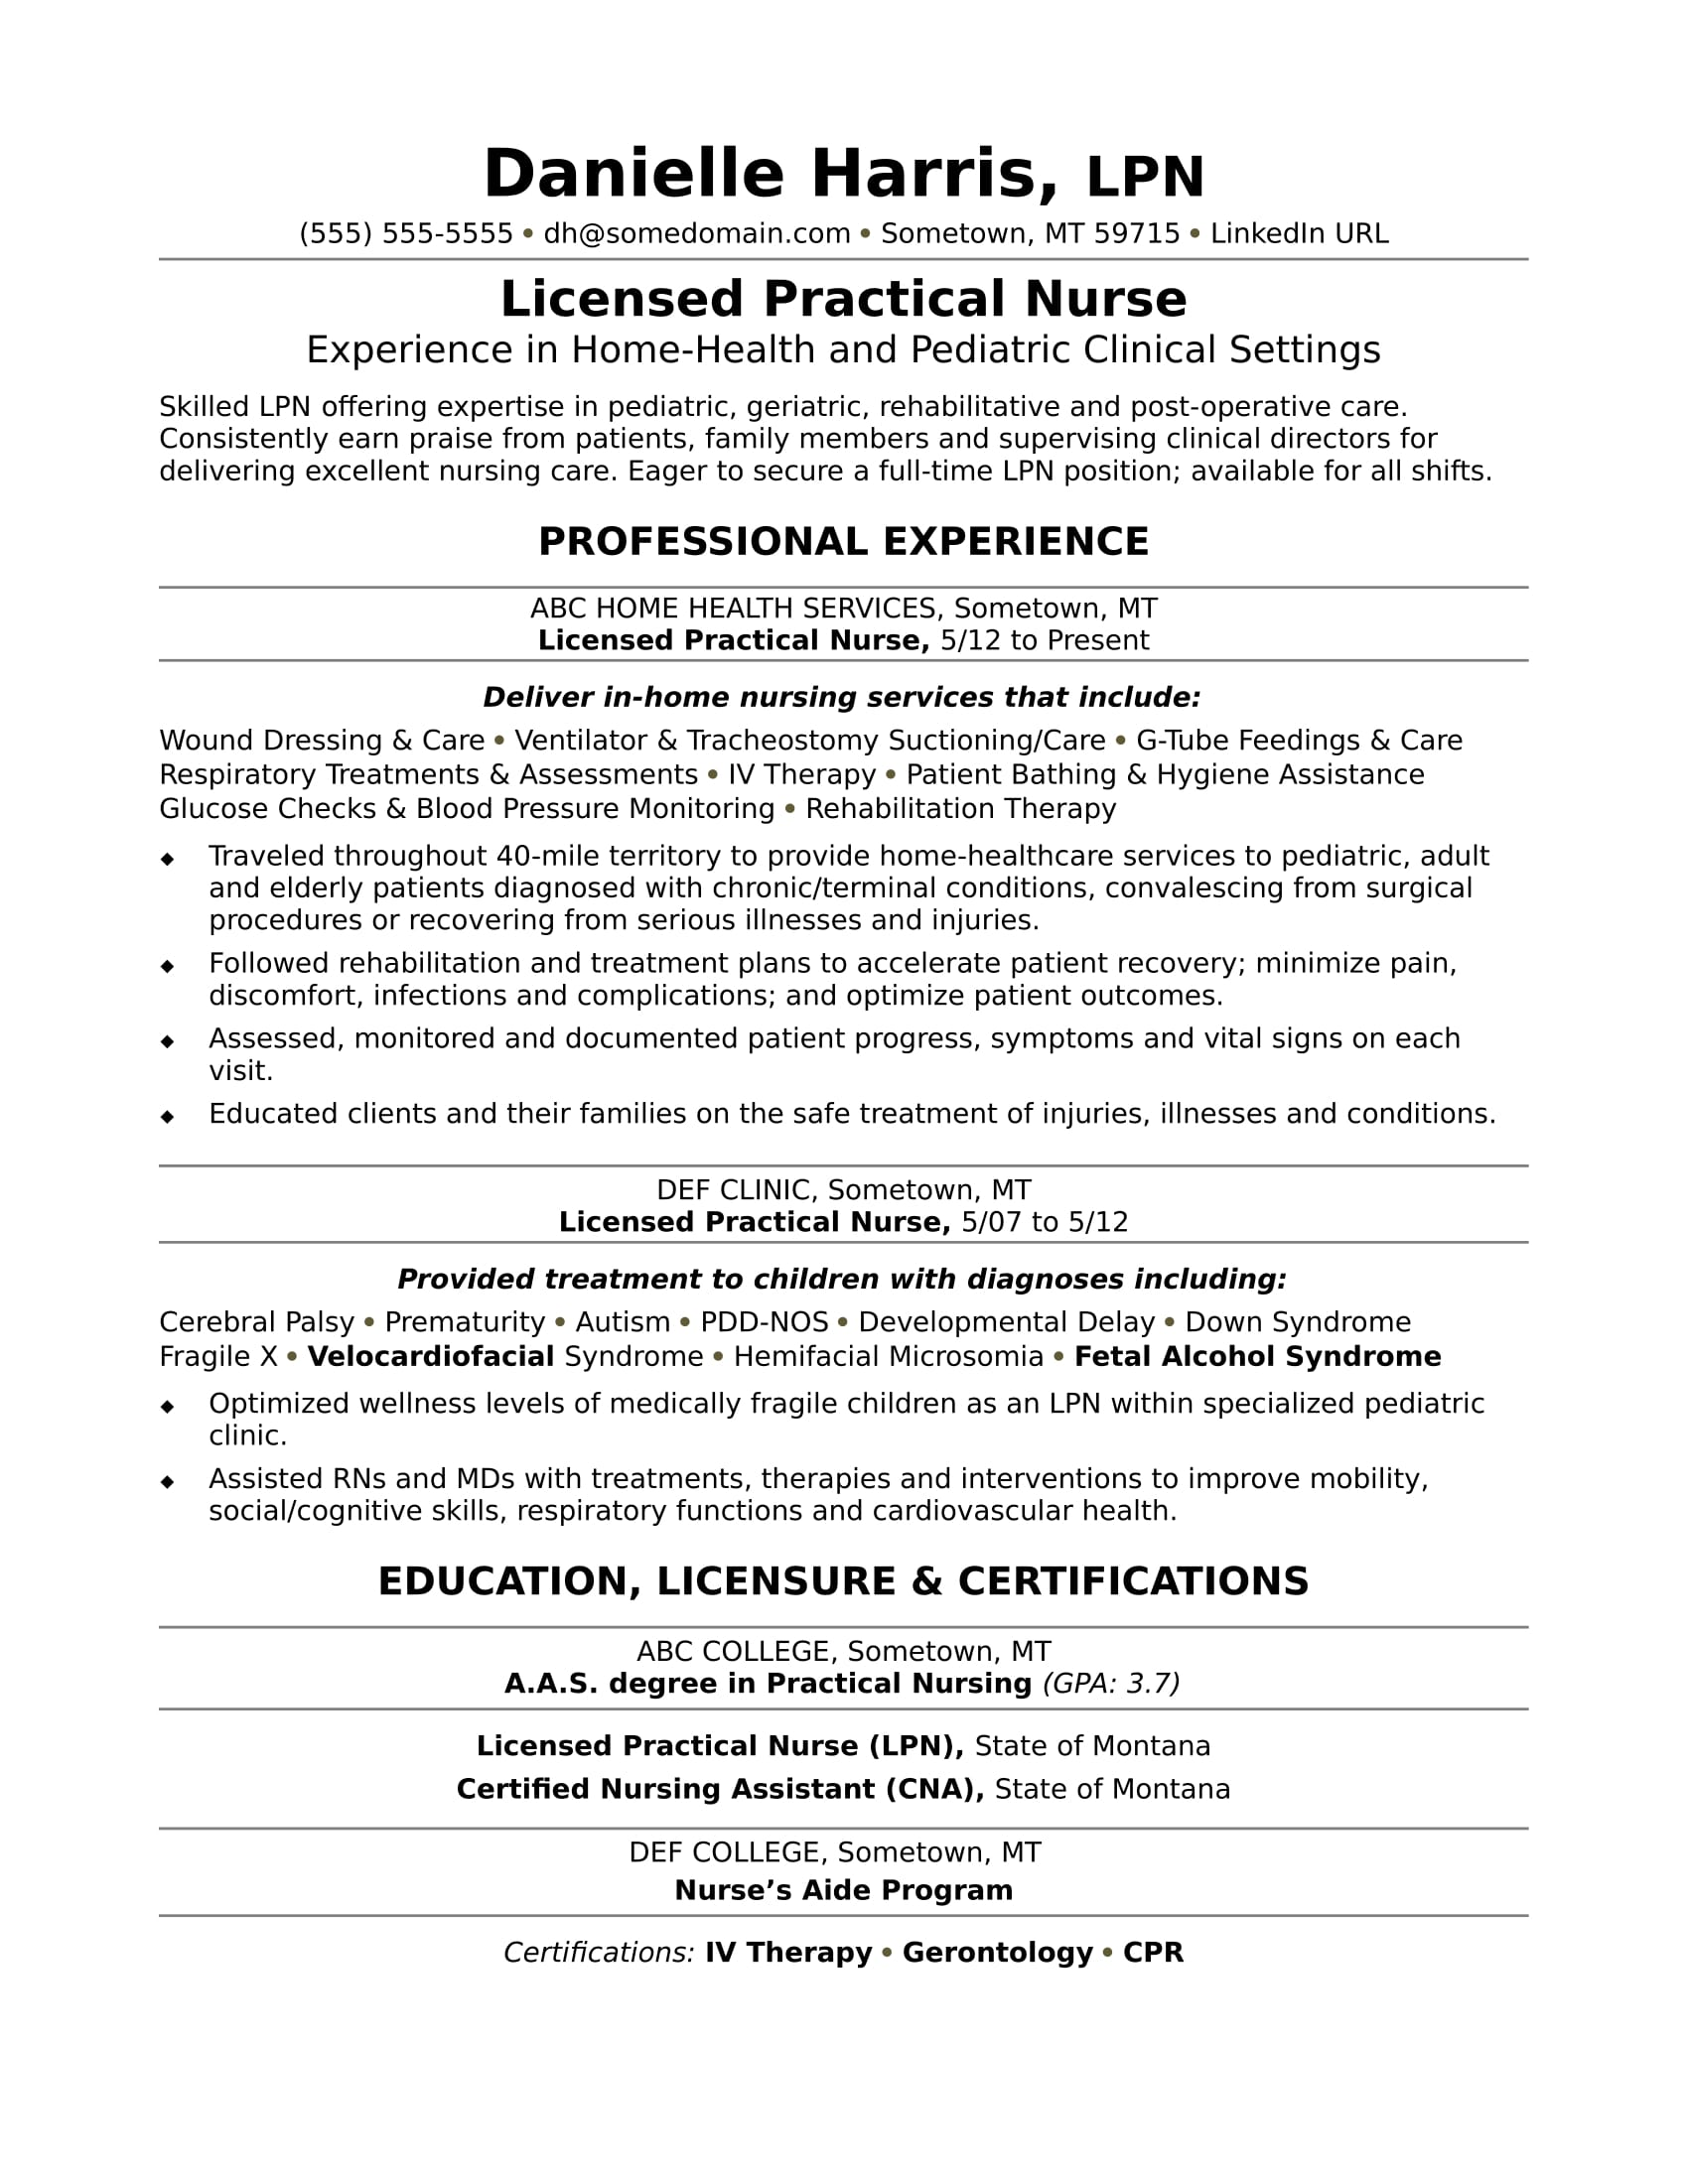 licensed practical nurse resume sample - Sample Lpn Resume Objective